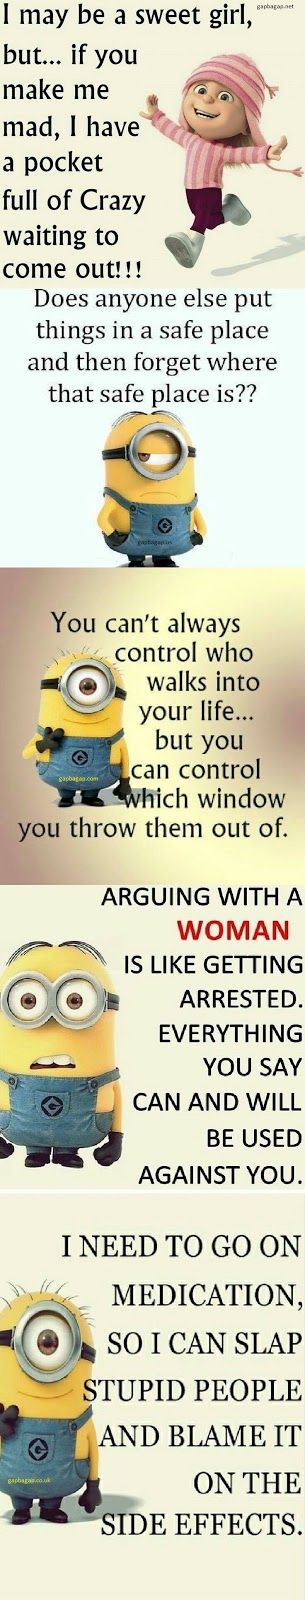 Top 5 Funniest Jokes By The Minions